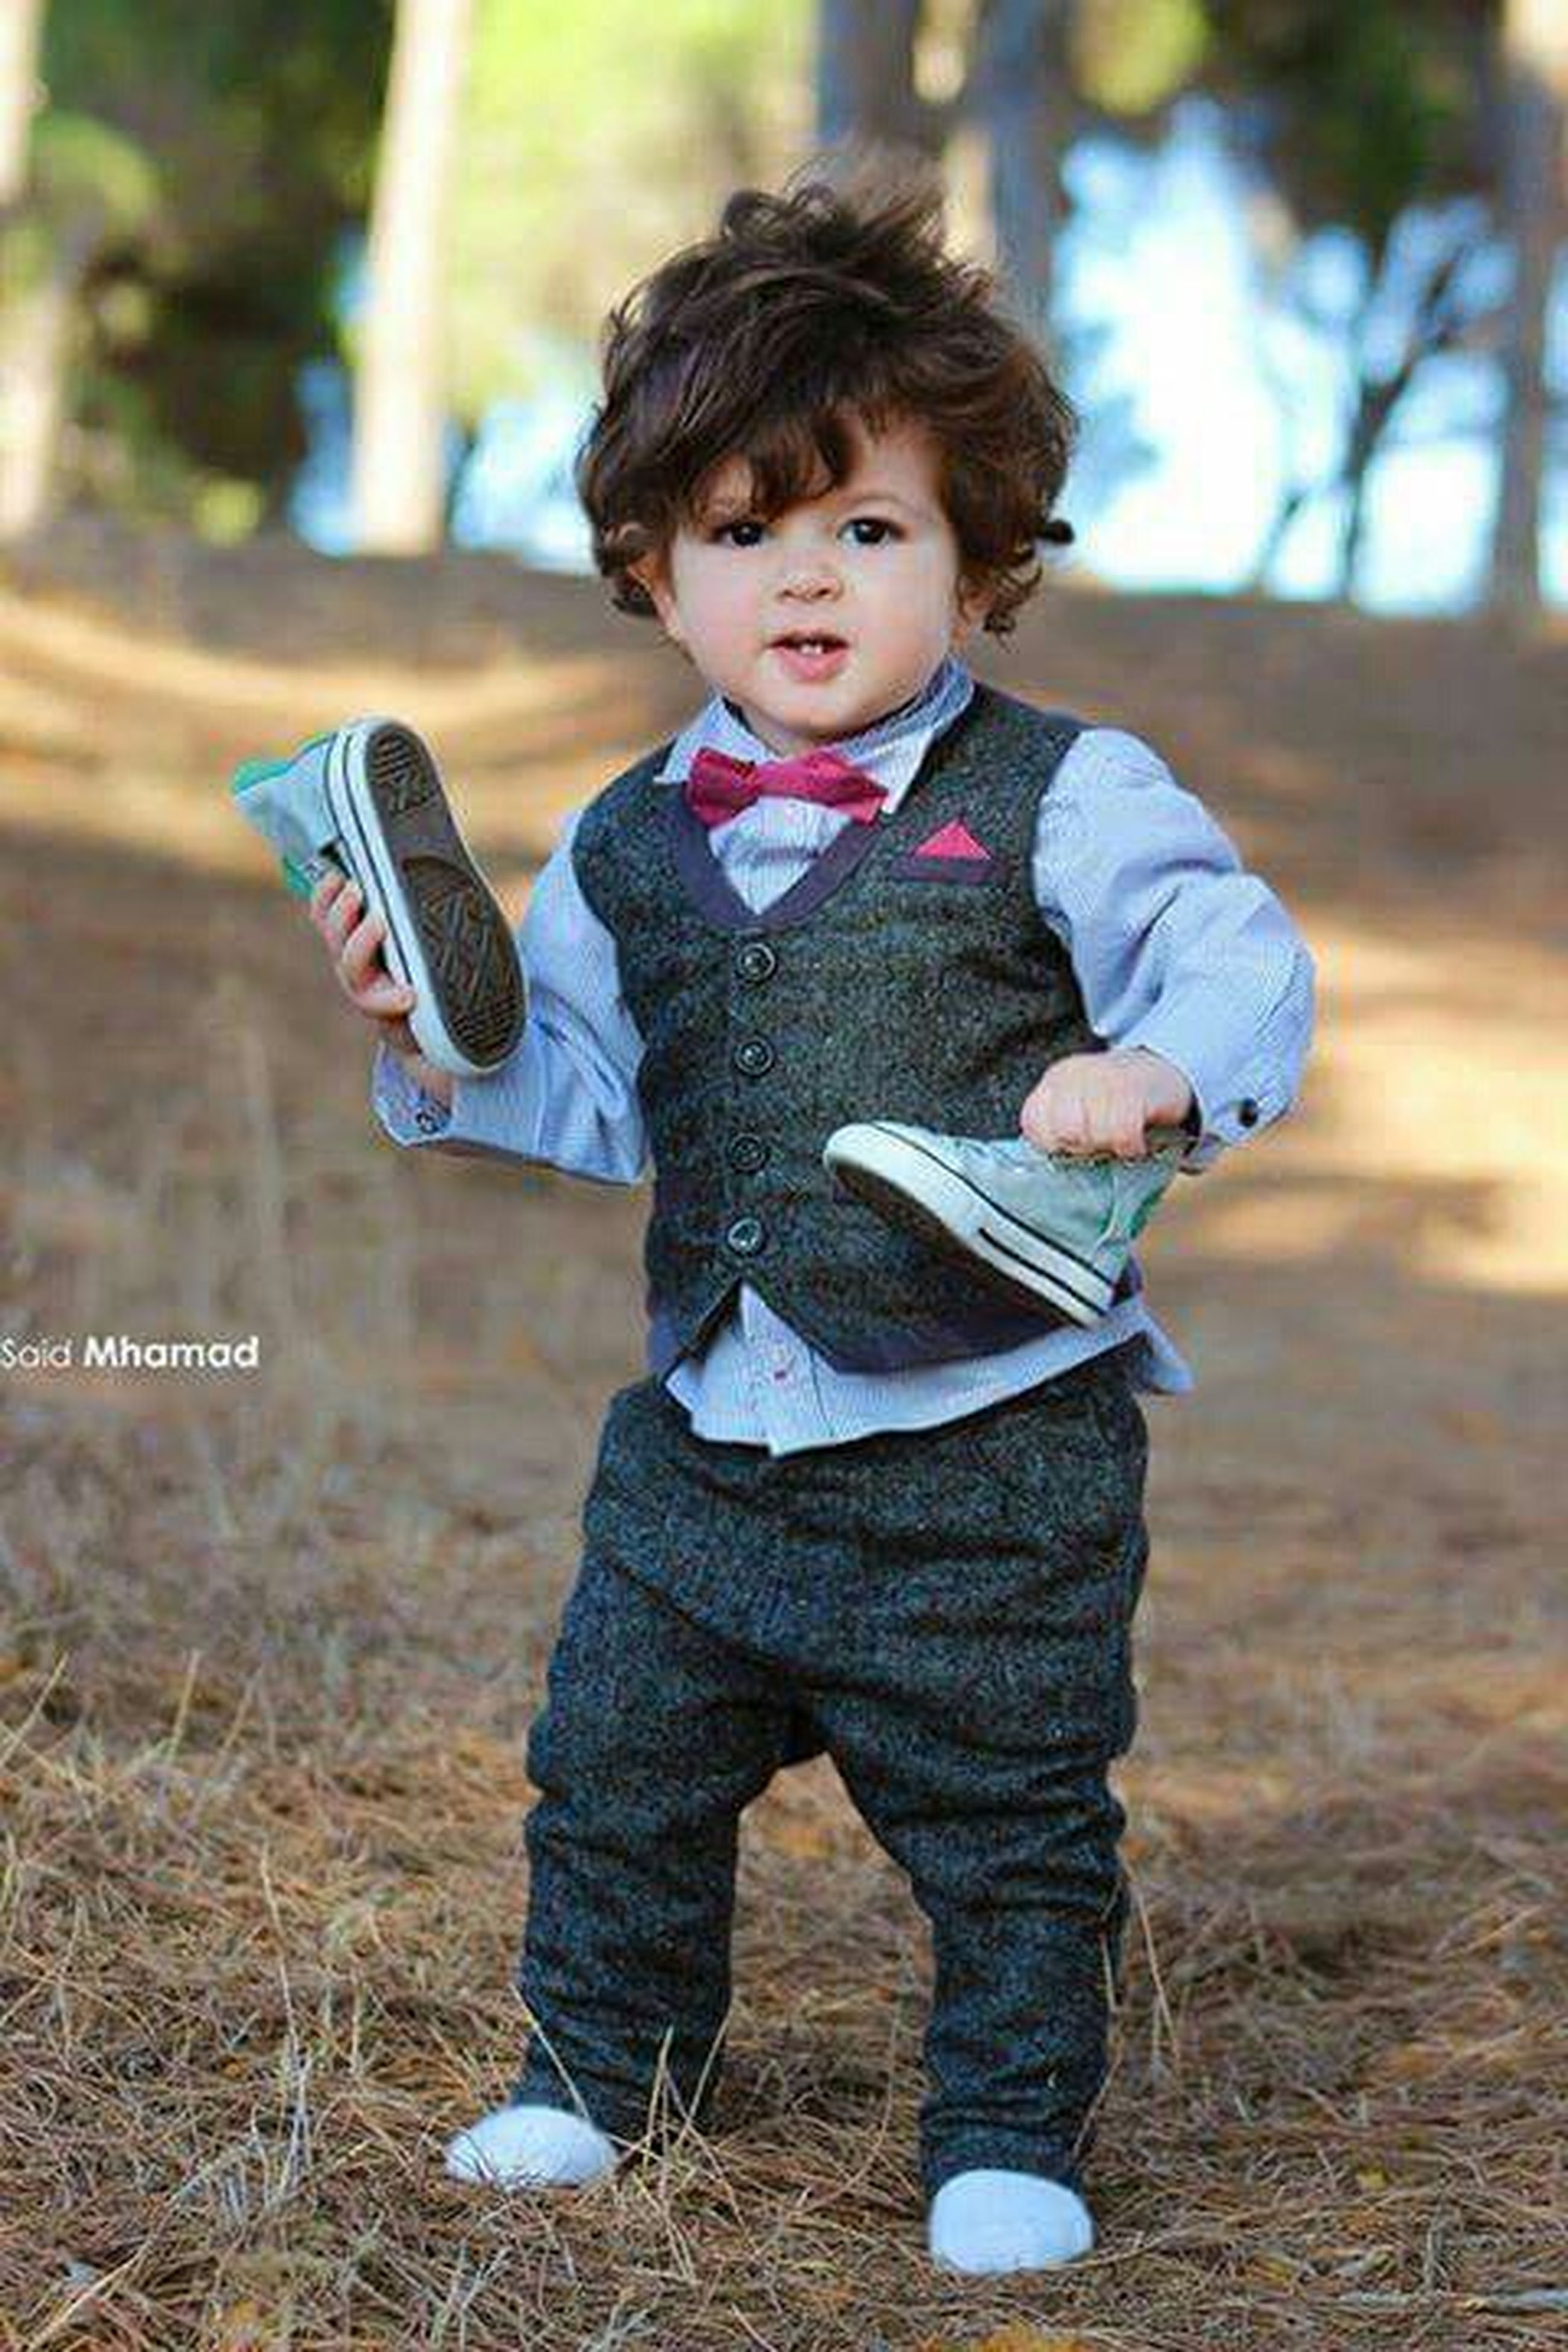 person, casual clothing, childhood, lifestyles, elementary age, full length, leisure activity, focus on foreground, front view, looking at camera, portrait, happiness, smiling, cute, innocence, standing, three quarter length, boys